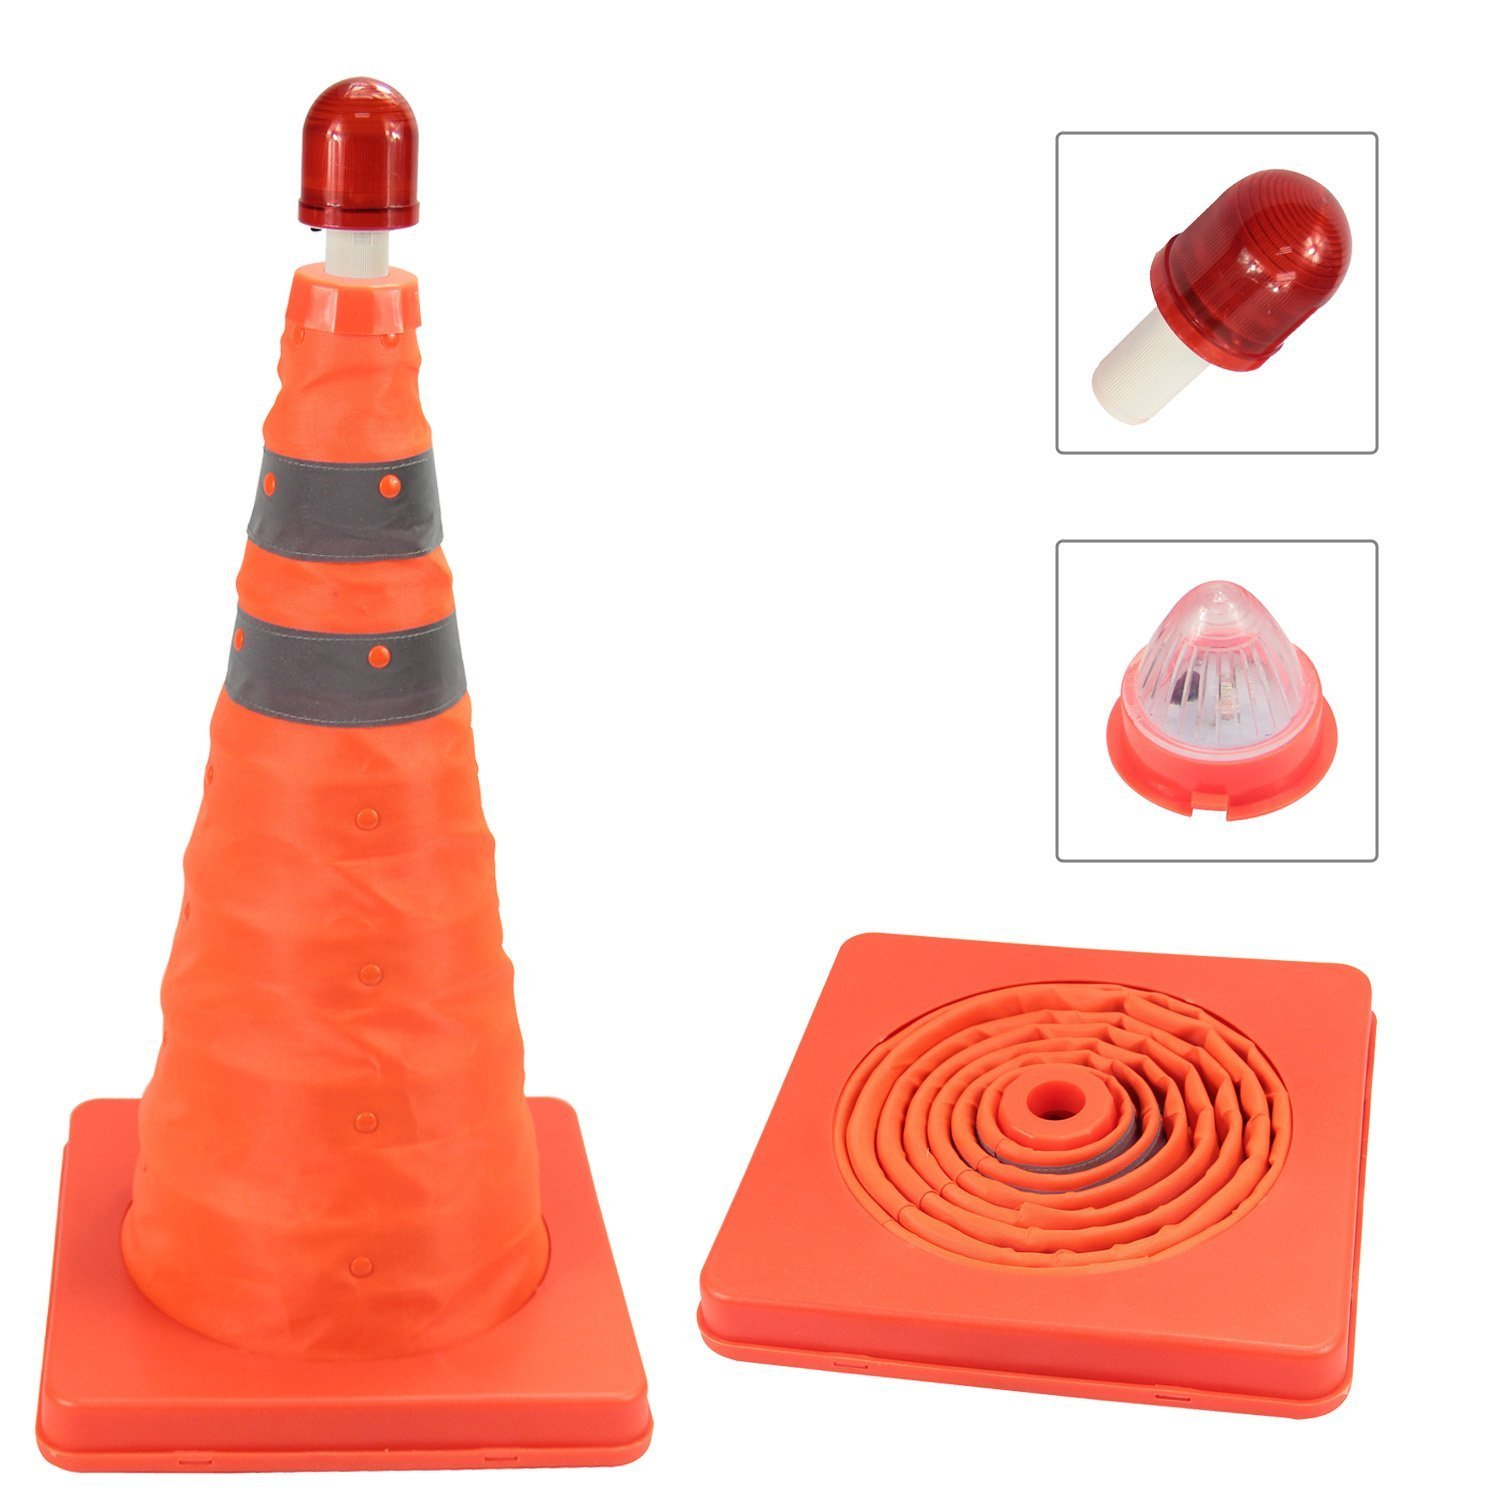 Upgraded Flashing Traffic Cone with Removable Inside Light & RED LED Flashlight Included, High Visibility Collapsible Pop up Reflective Cone, Fluorescent Orange - Highest Quality